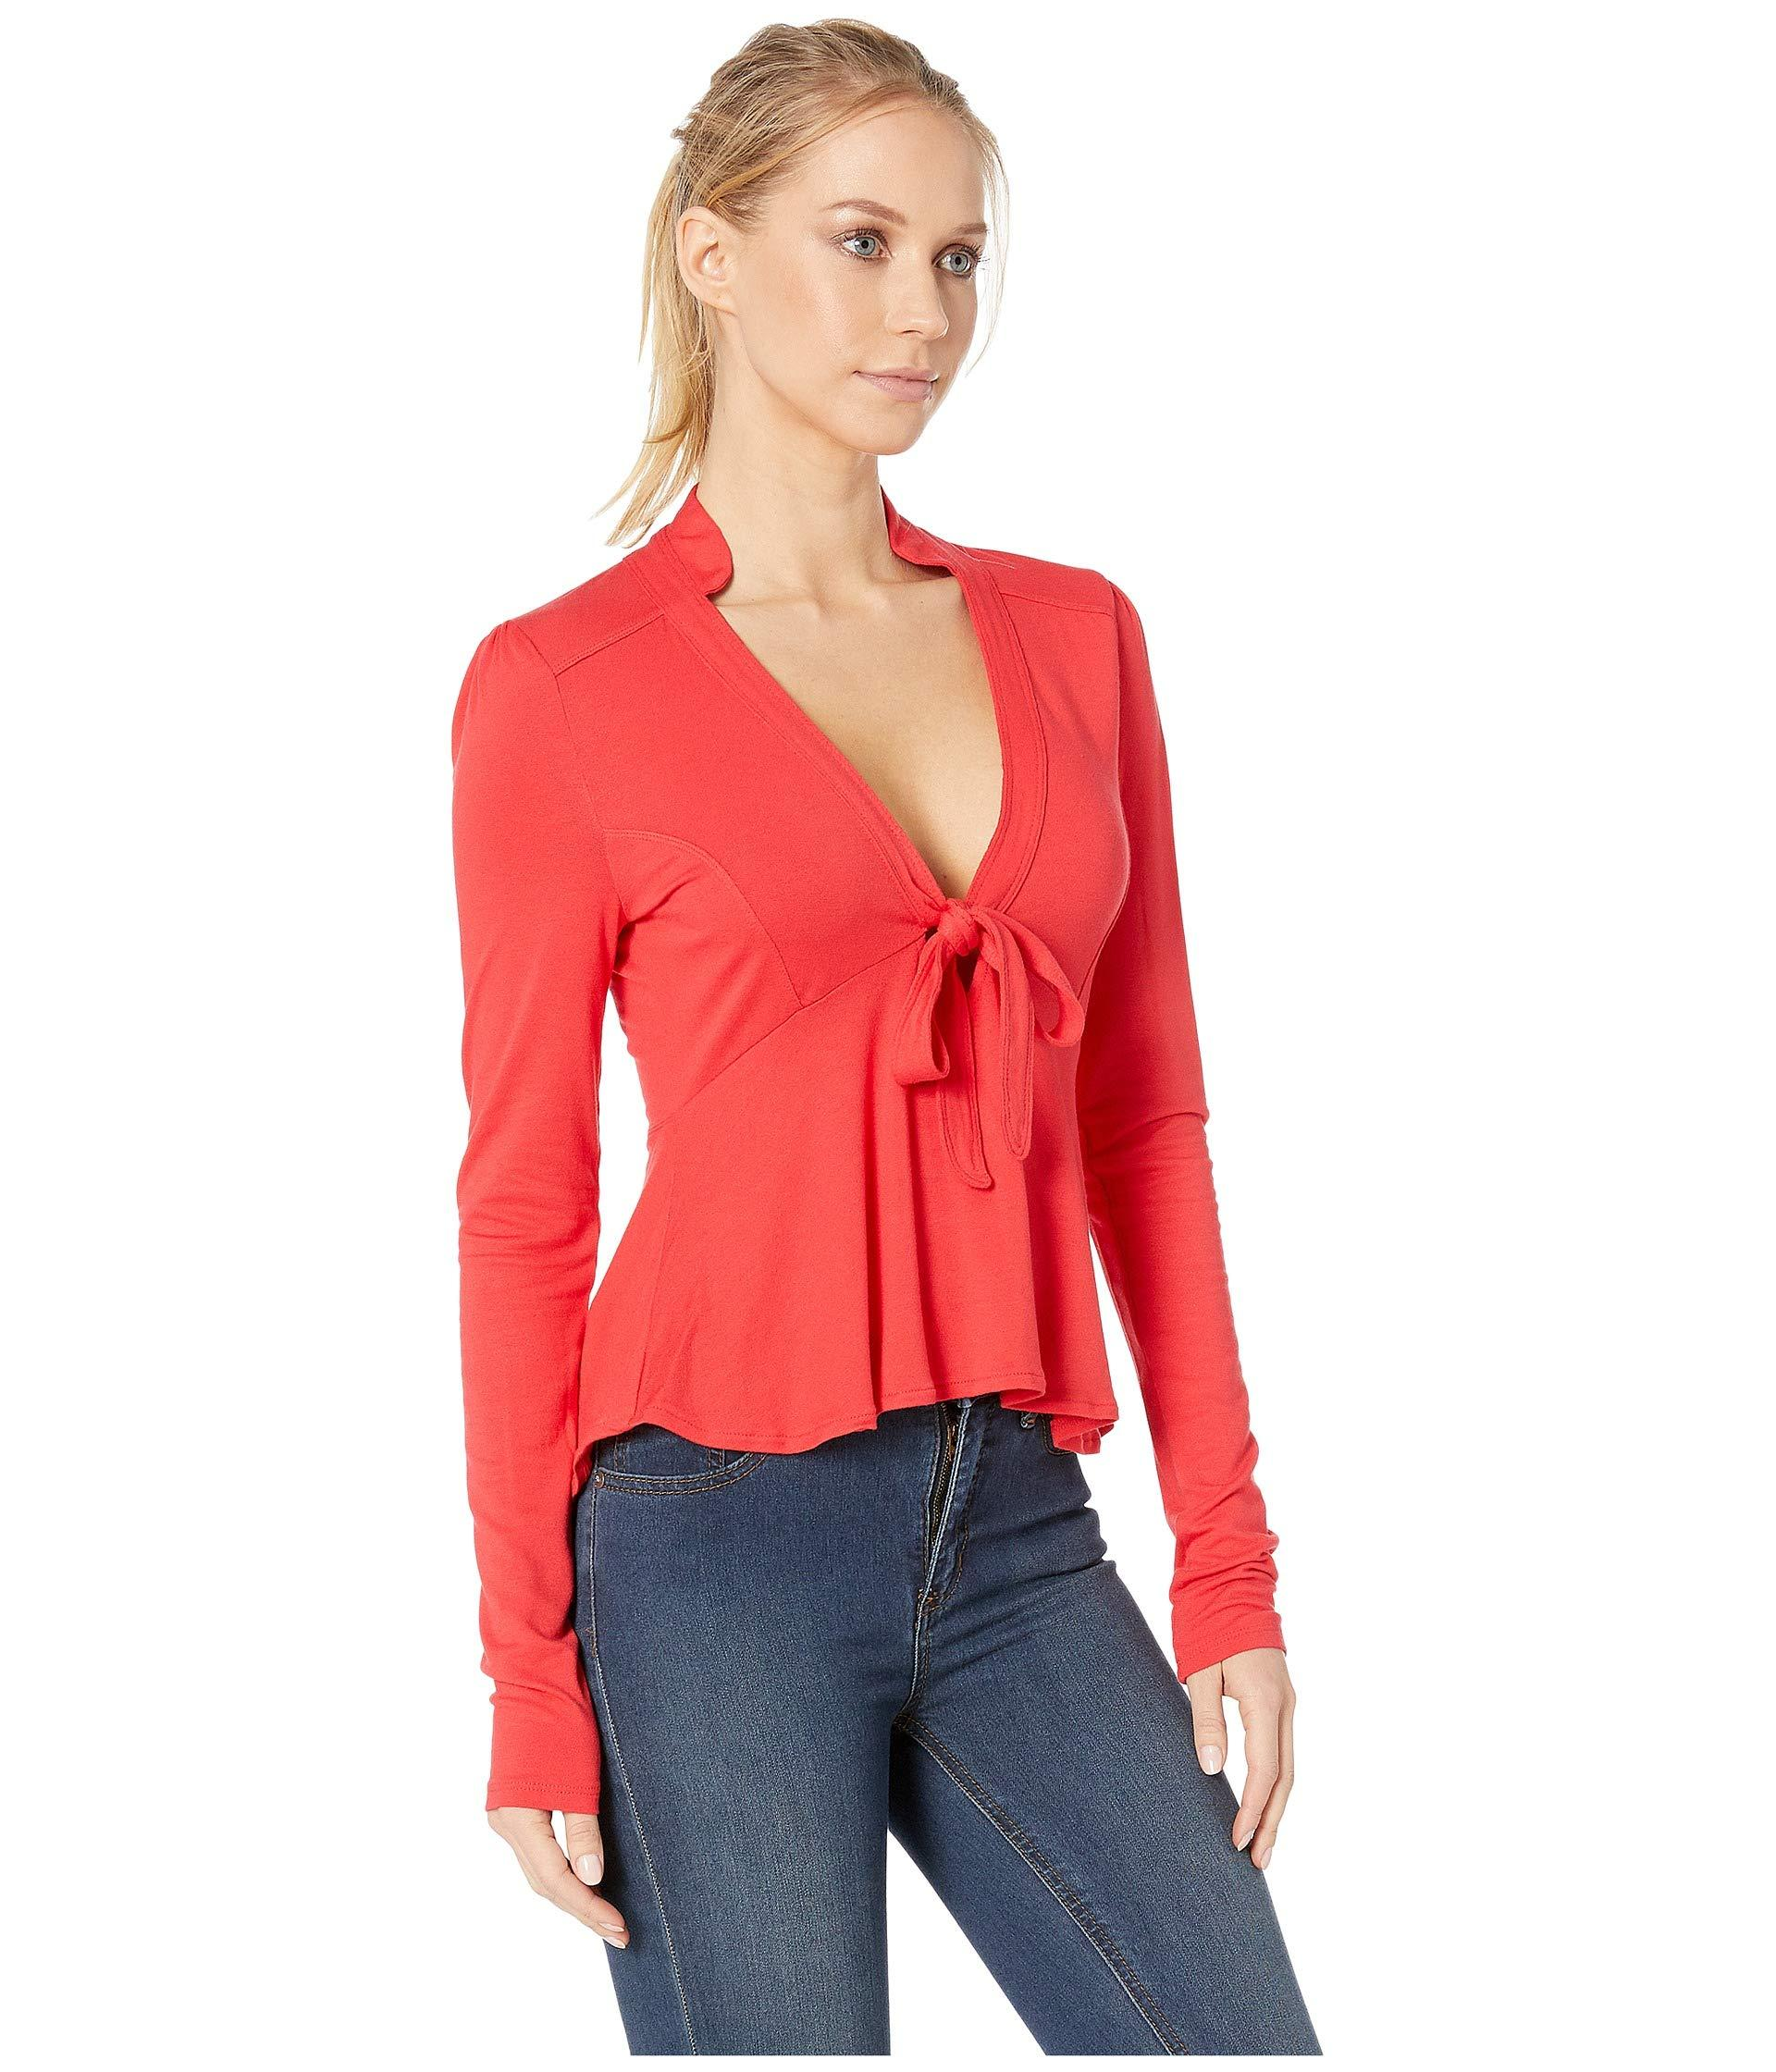 Lyst - Free People Lois Top (red) Women s Blouse in Red 5cafea867